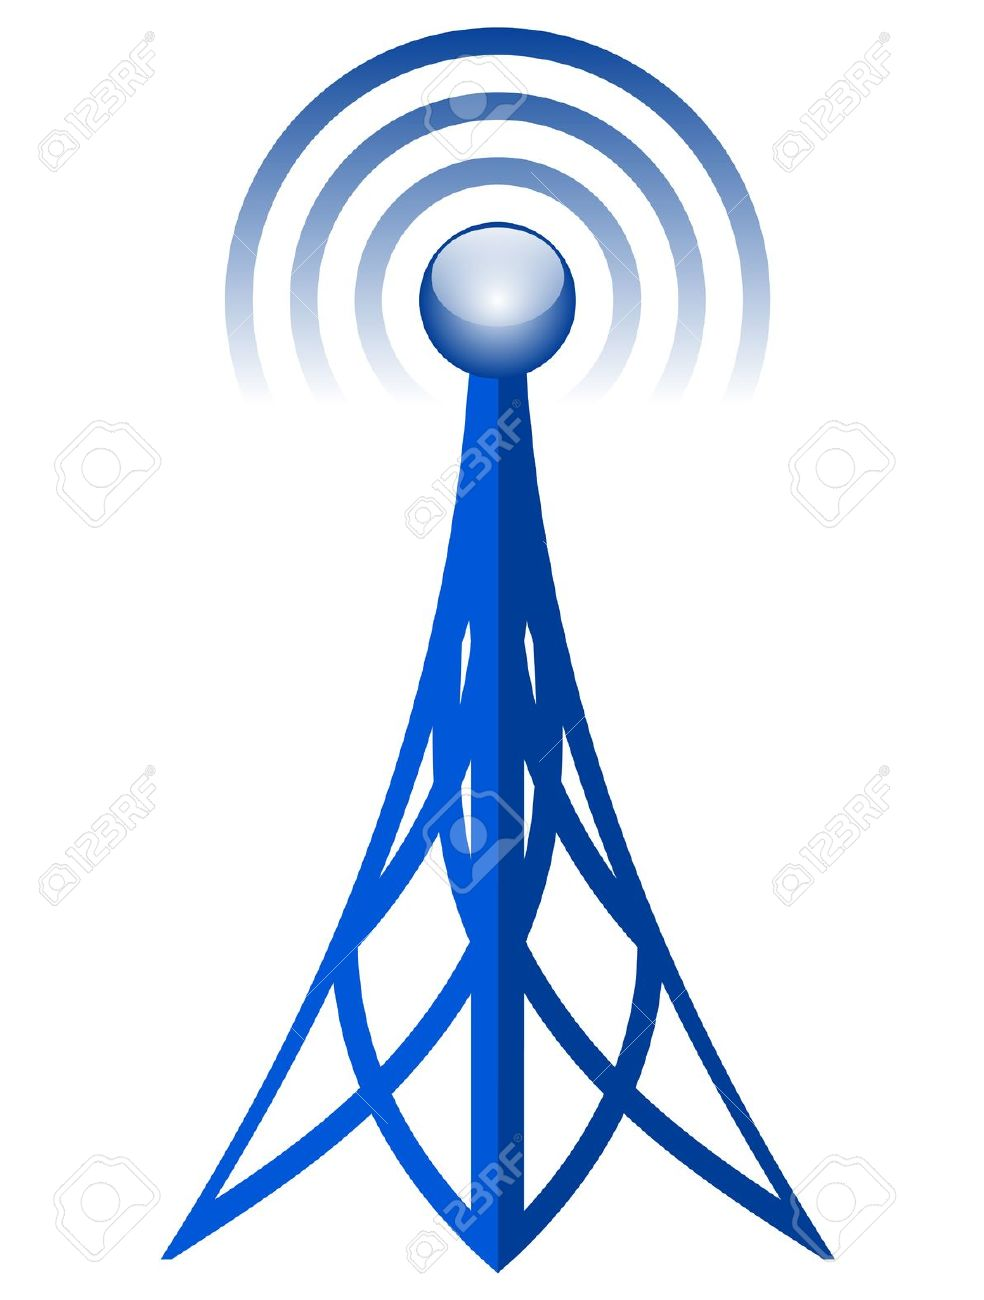 Vector Antenna Icon Royalty Free Cliparts, Vectors, And Stock.